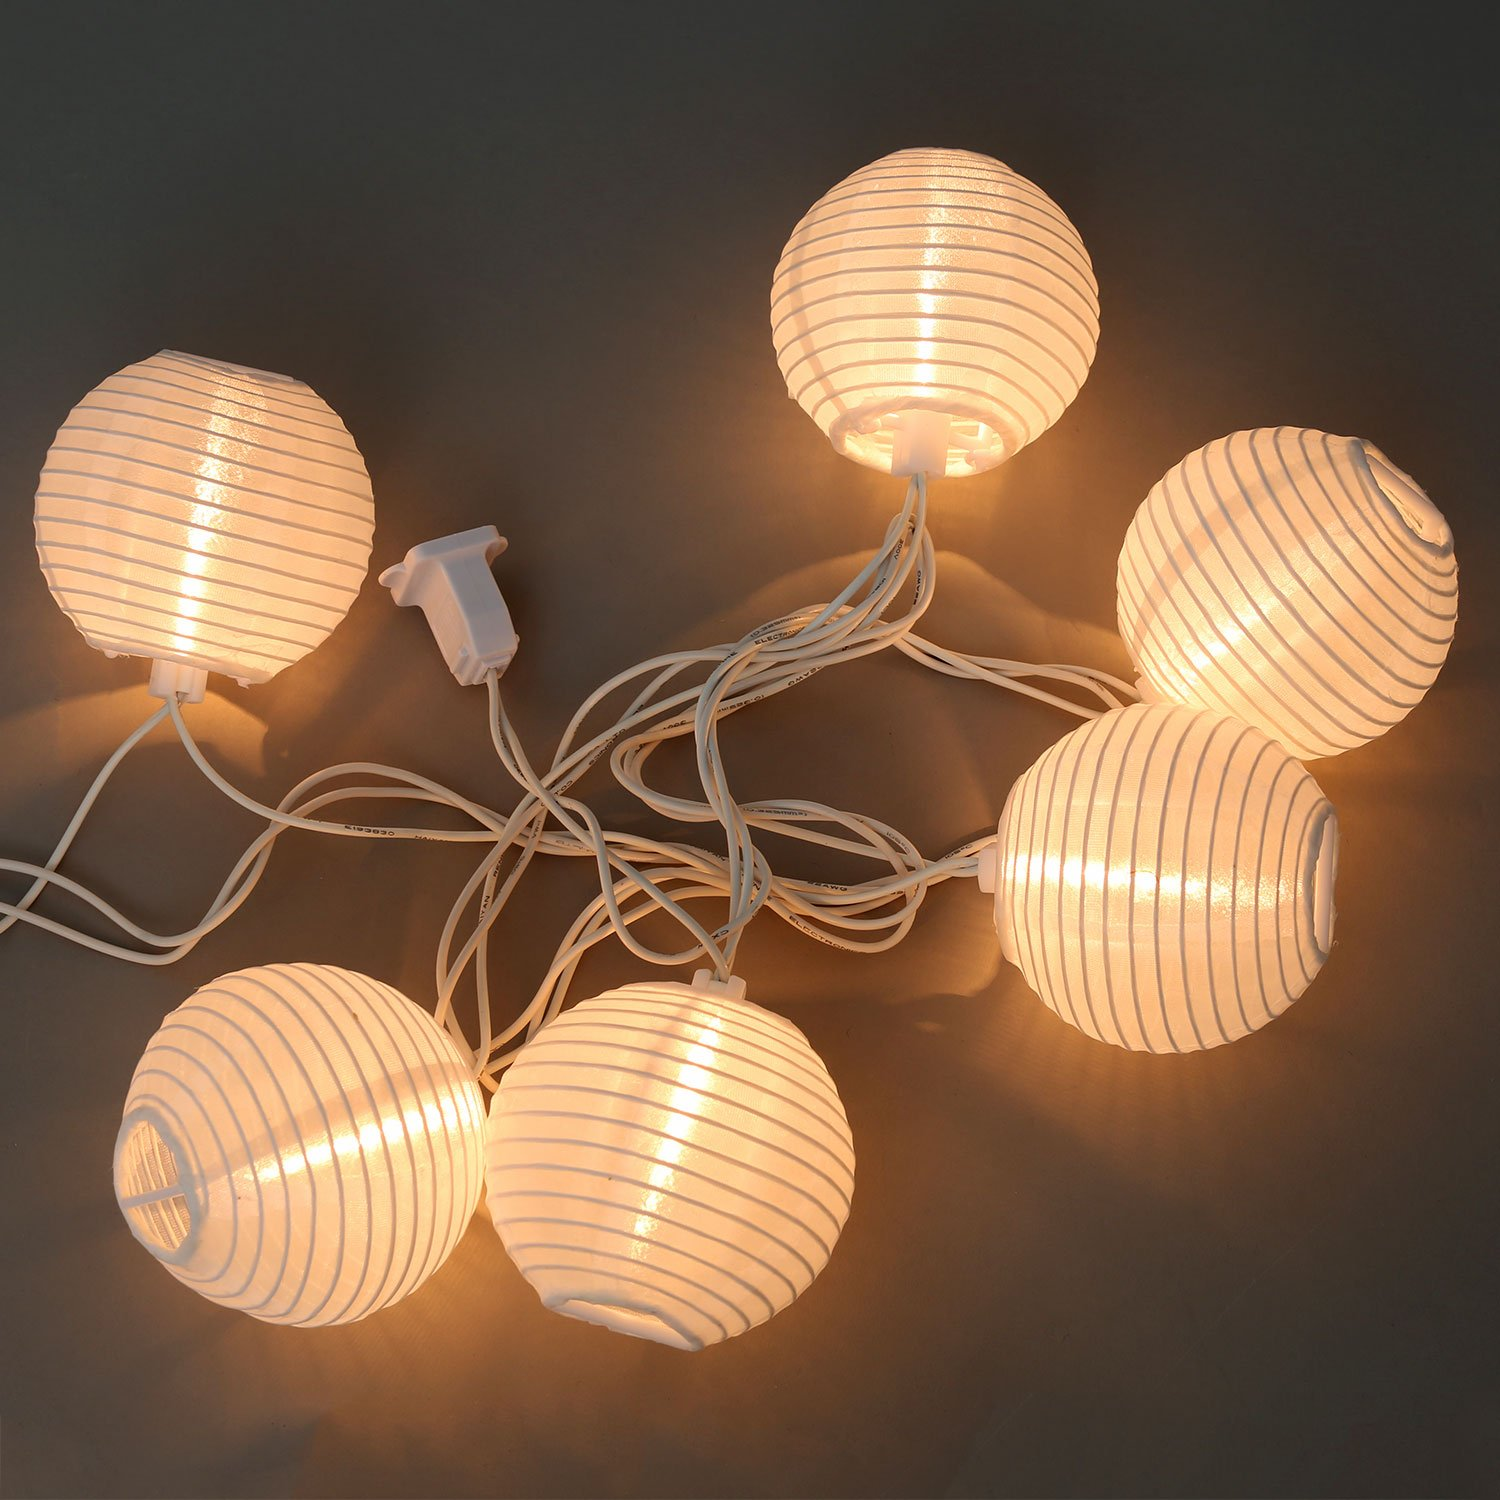 Mini paper lantern string lights - White Outdoor String Light 10 Mini Lanterns 1 Plugin Strand Connectable Water Resistant Indoor Outdoor Use Expandable To 250 Lights Decorative